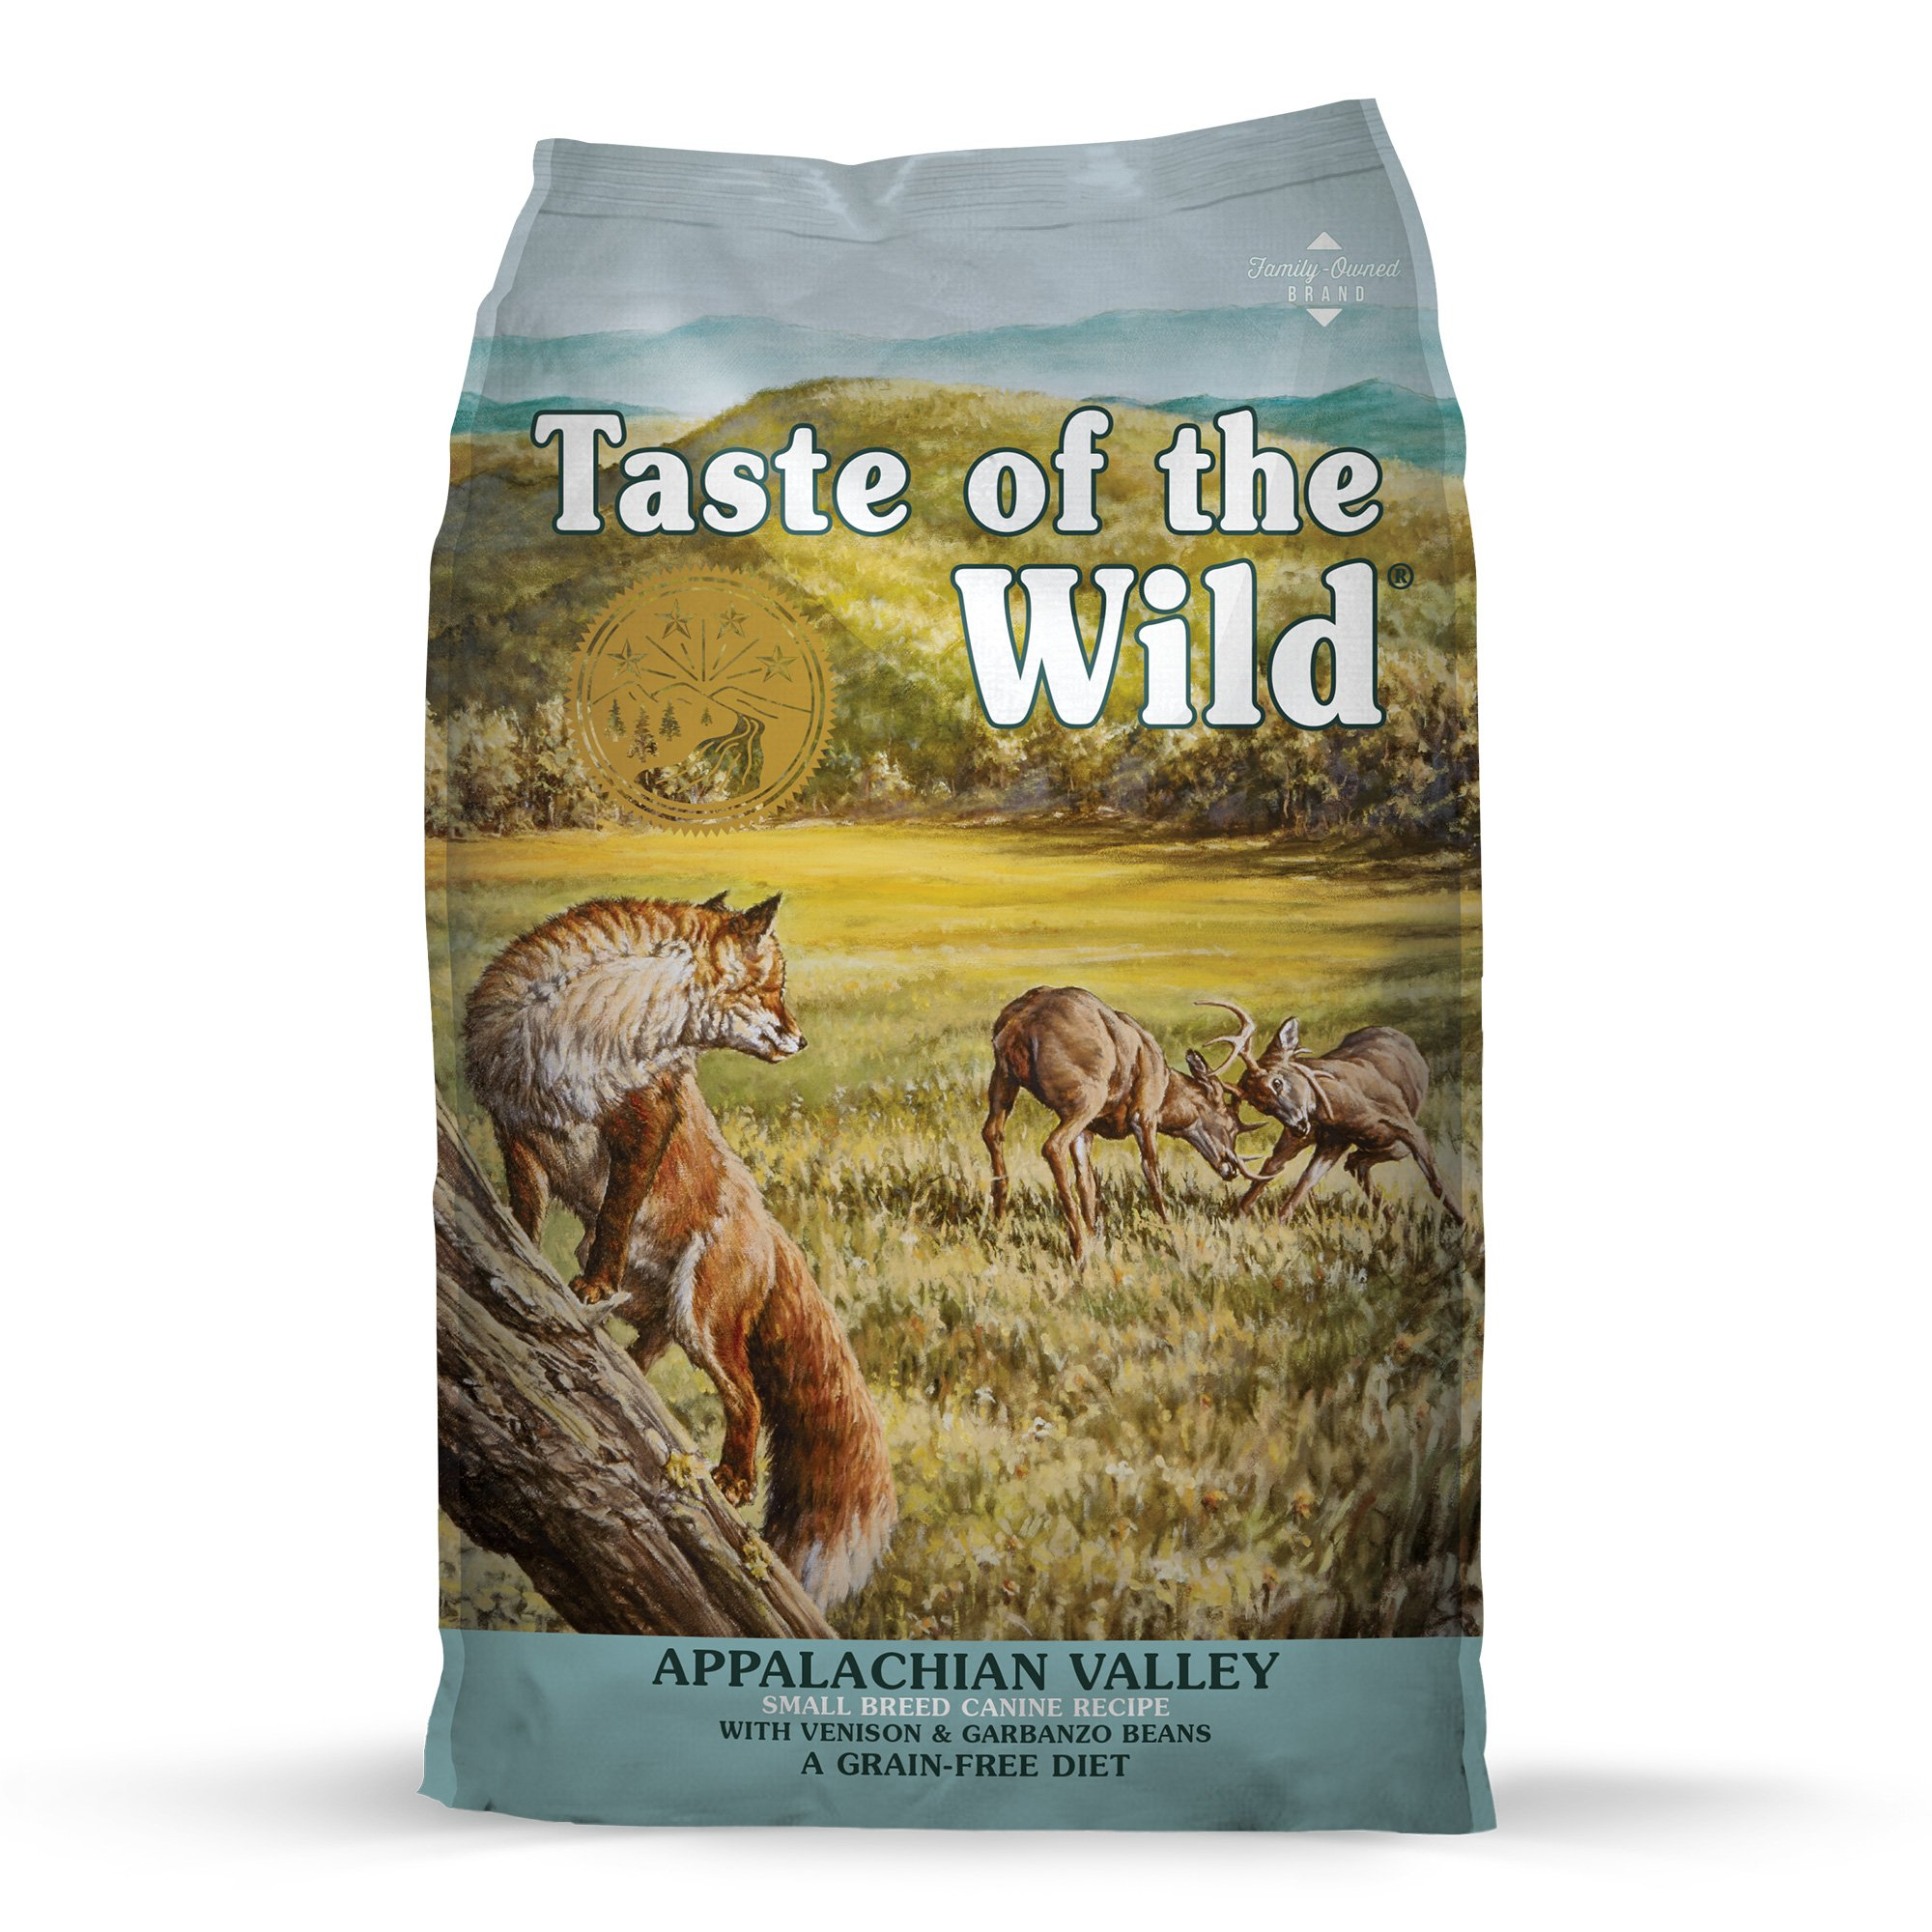 Taste of the Wild Appalachian Valley Small Breed Grain-Free Roasted Venison Dry Dog Food, 5 lbs.